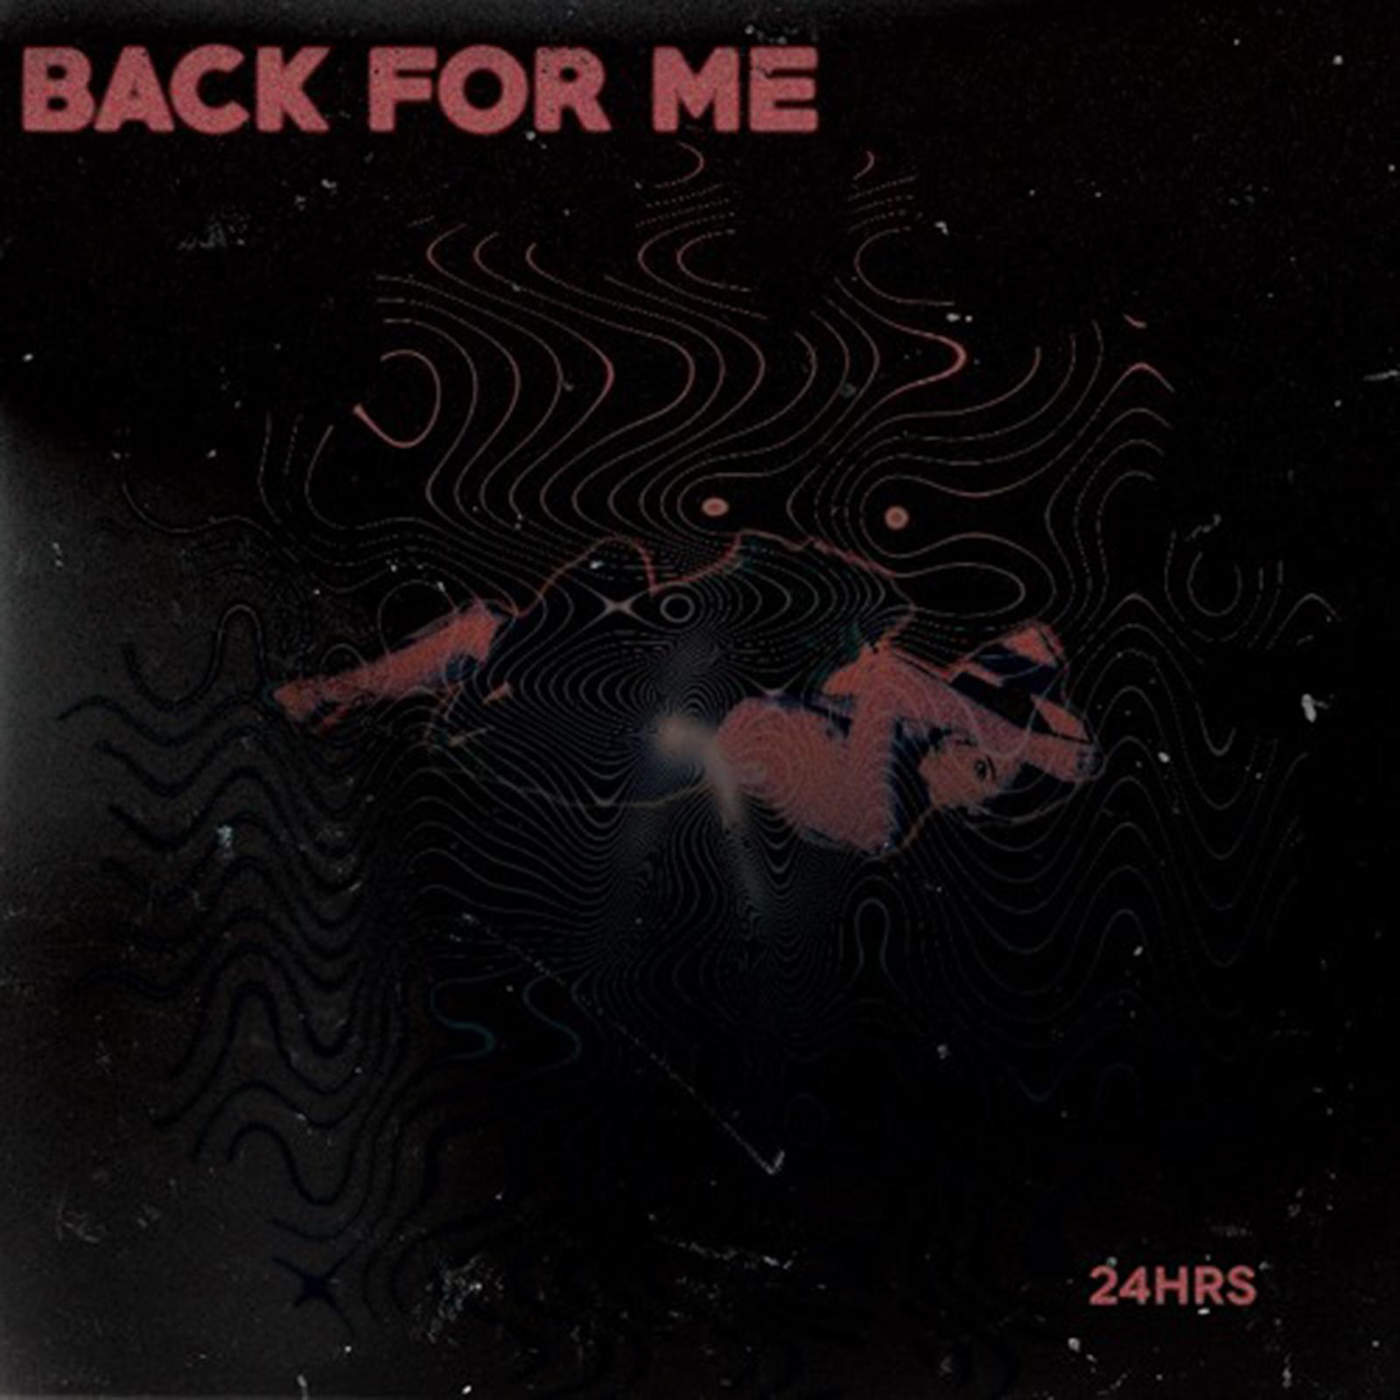 24hrs - Back for Me - Single Cover